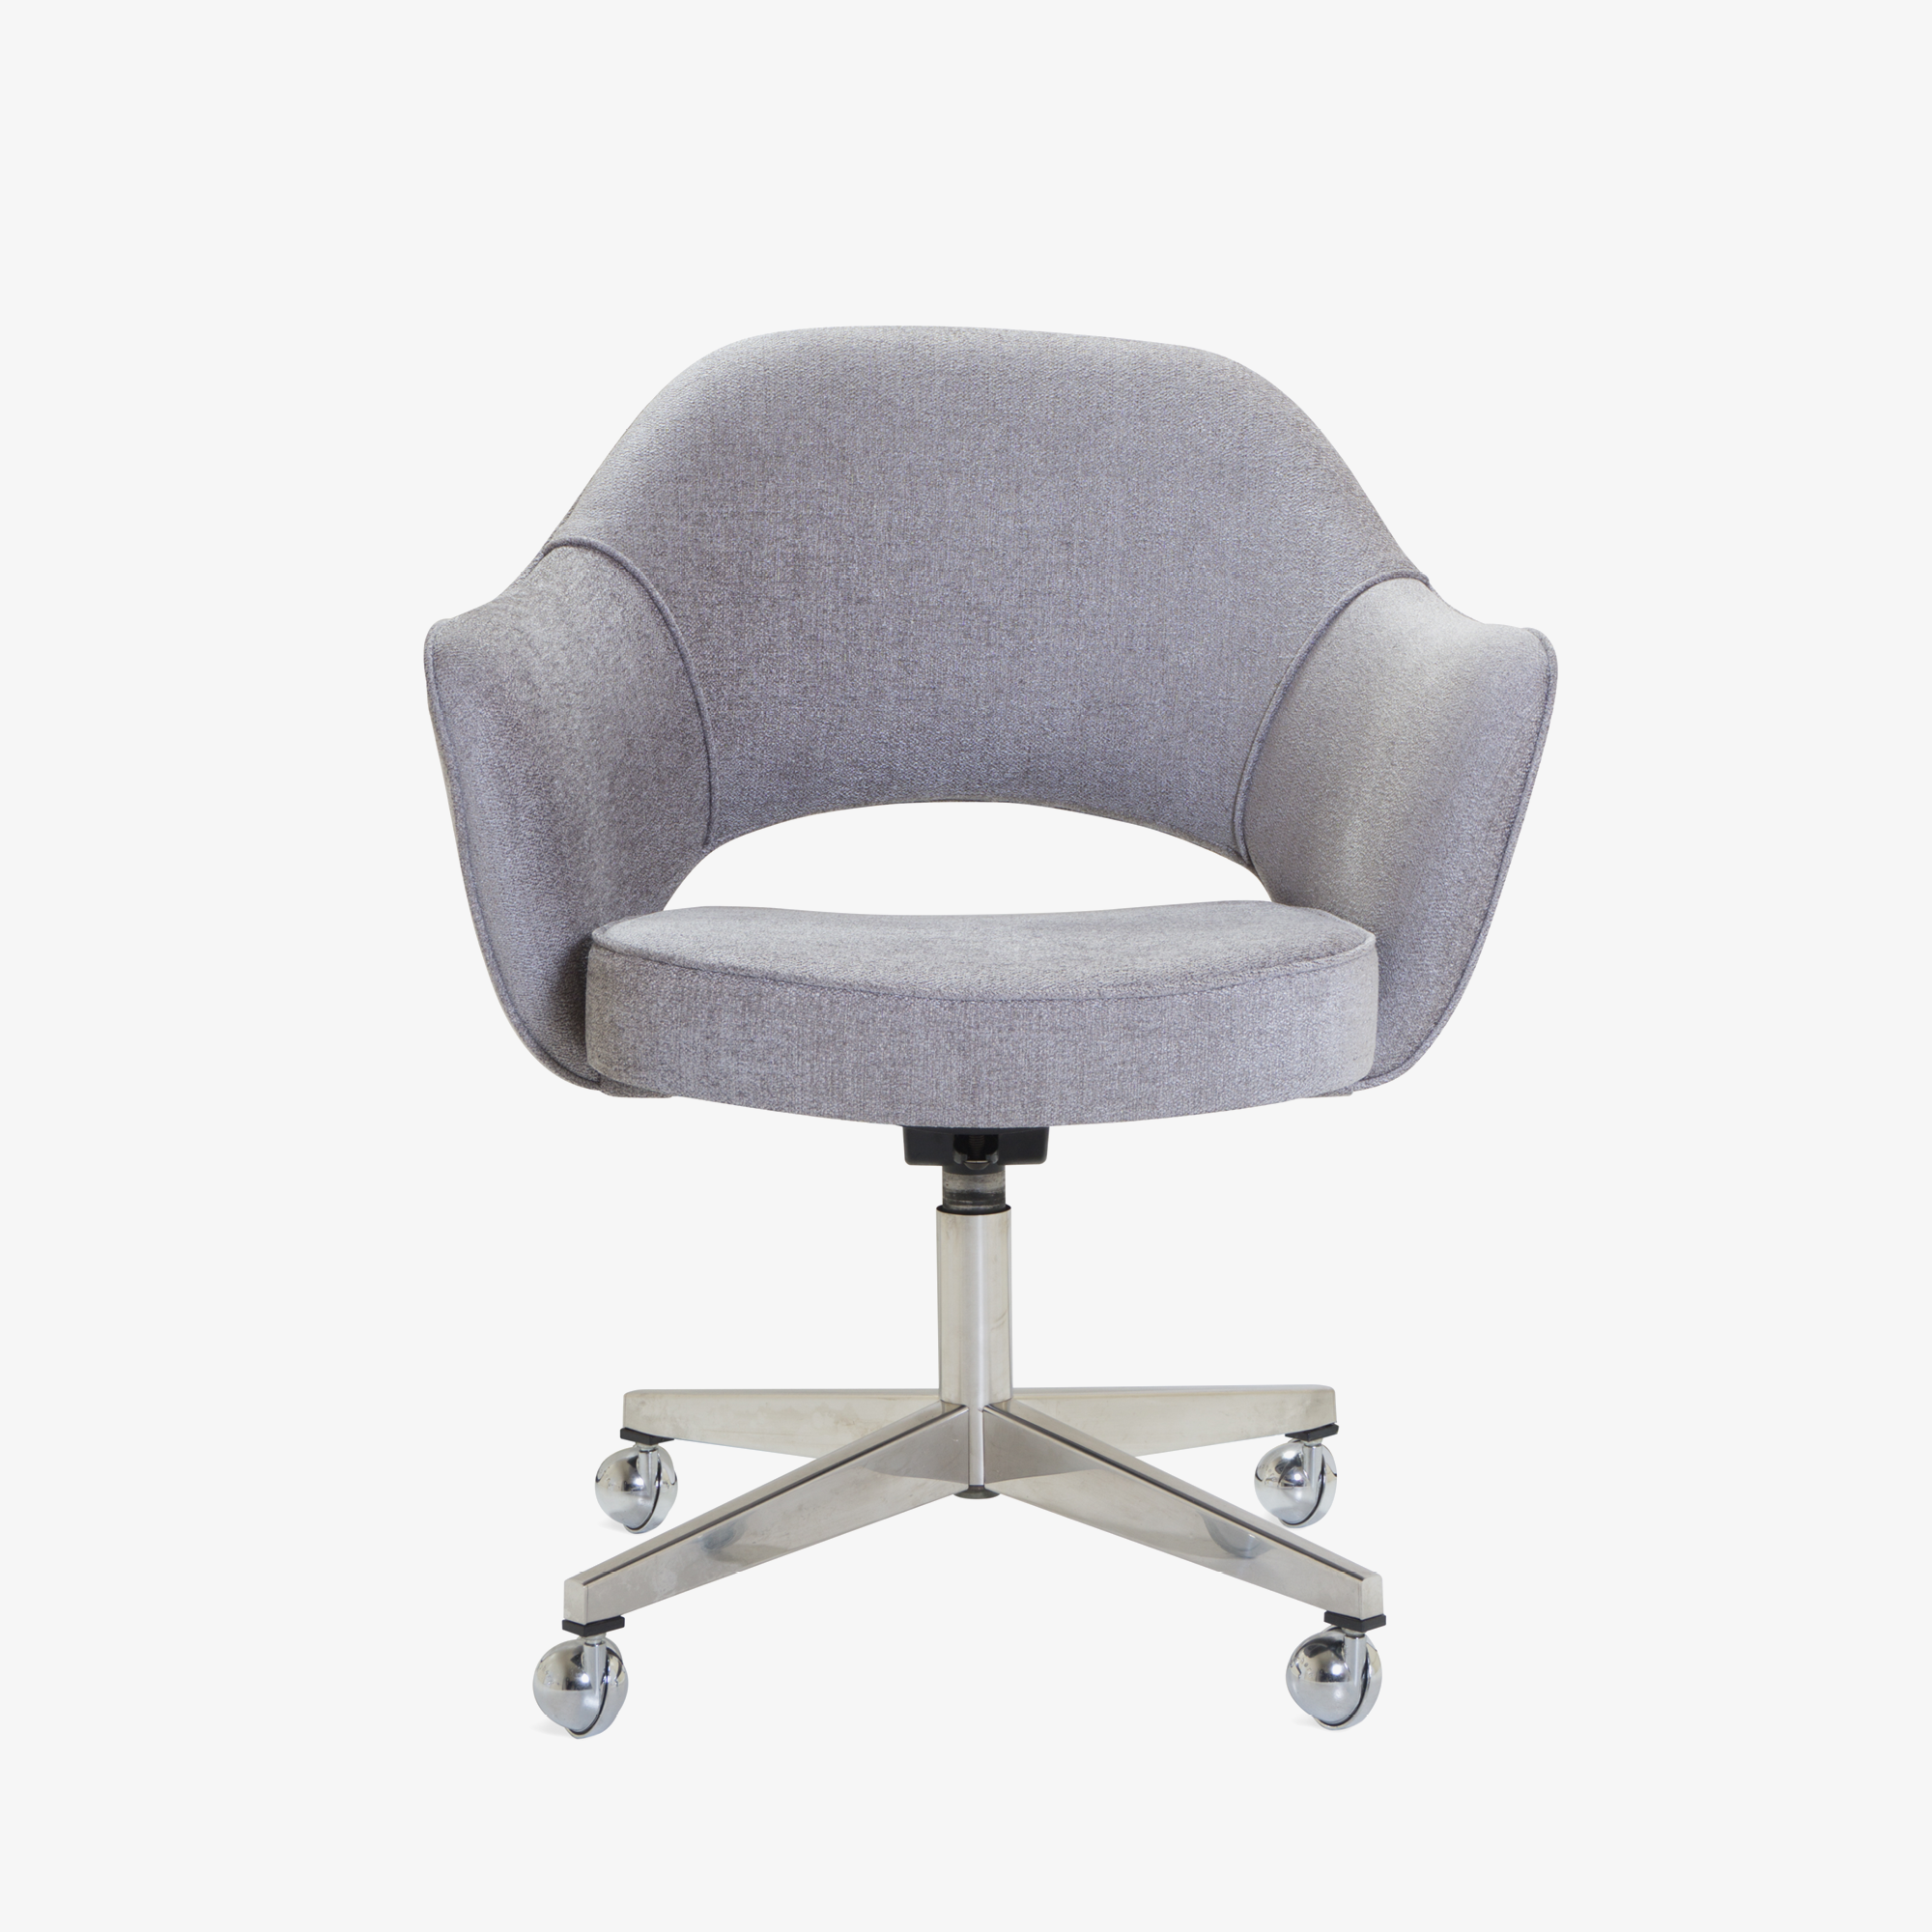 Saarinen Executive Arm Chair in Sterling, Swivel Base2.png